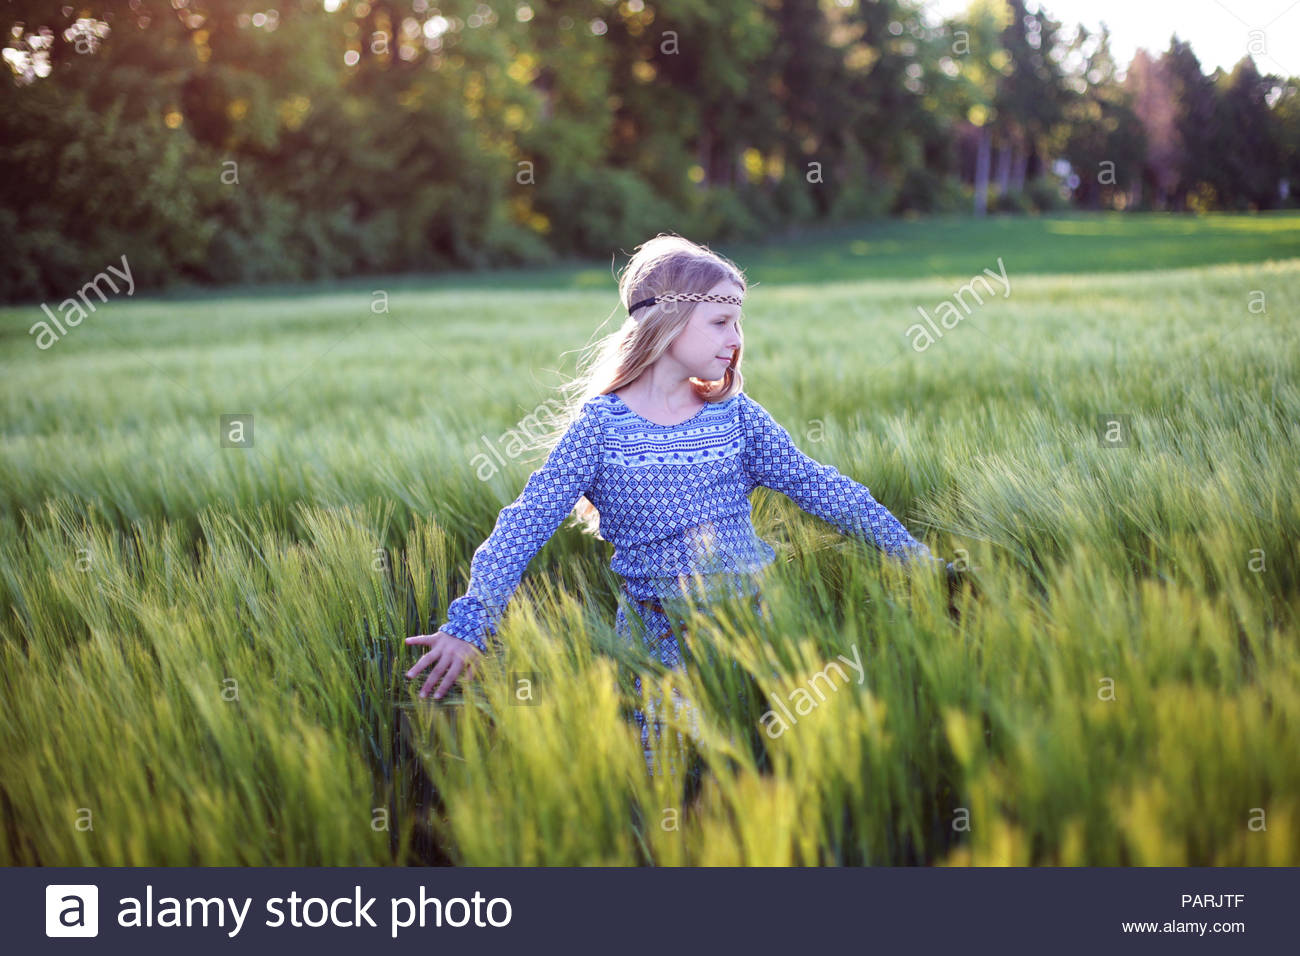 A young girl with blonde hair running in the grass - Stock Image